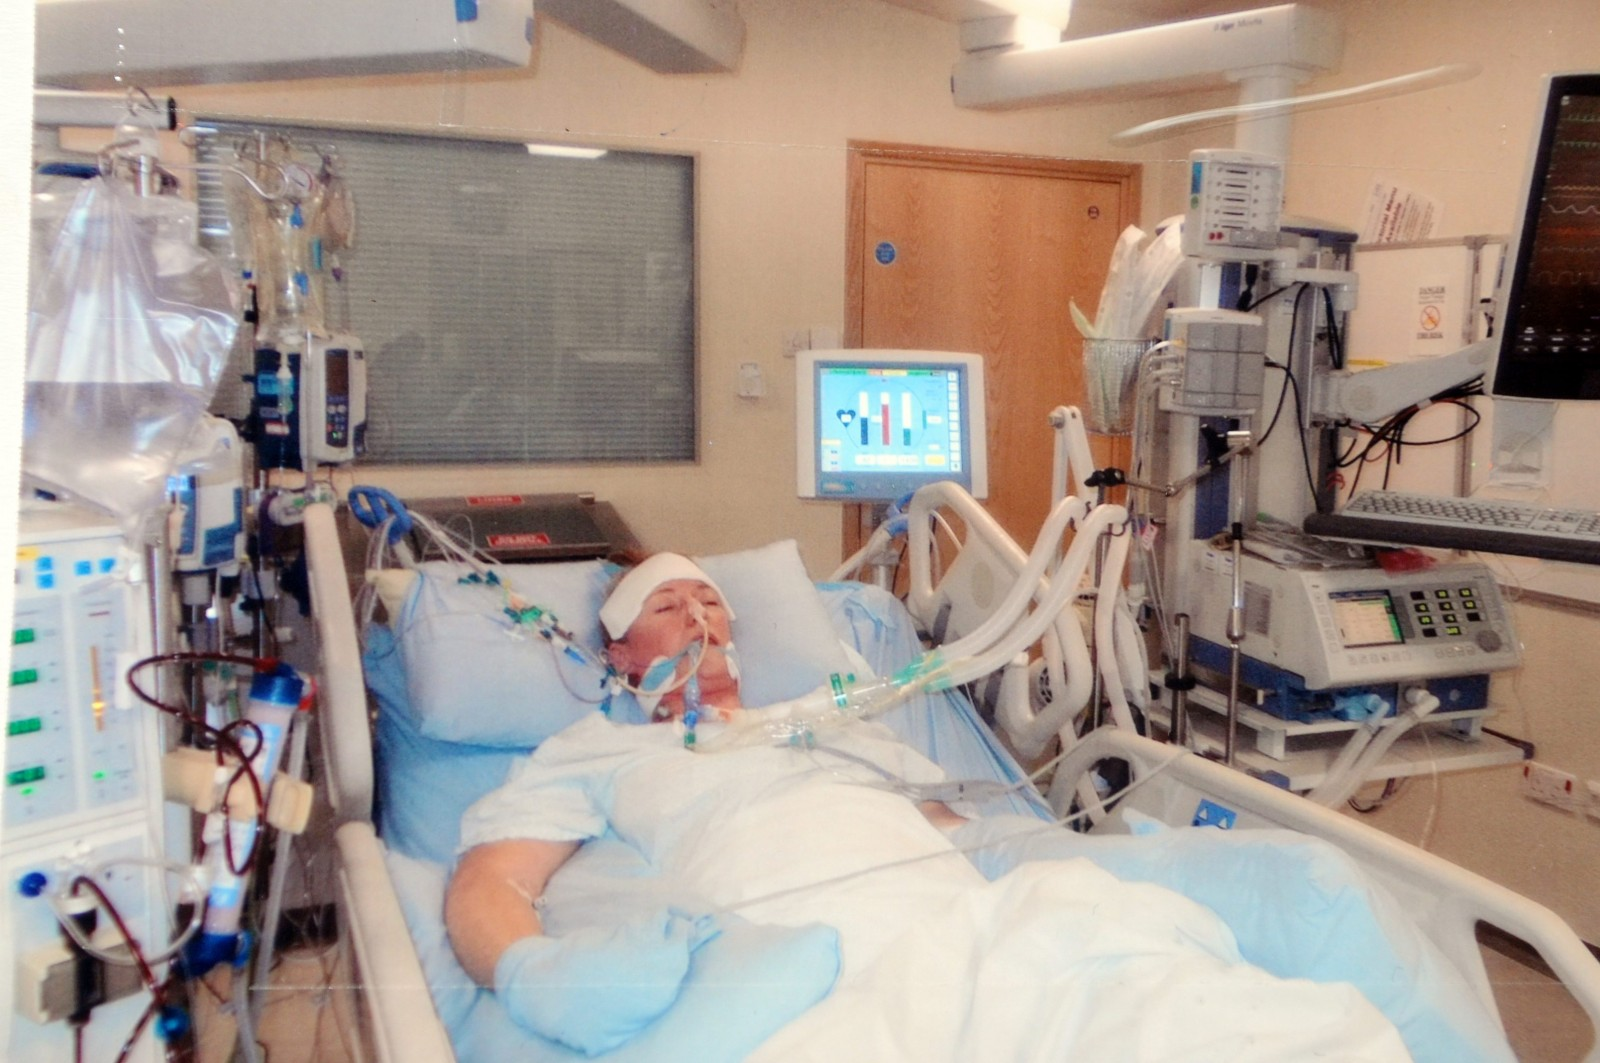 Mum slips into life-threatening coma after catching a COLD